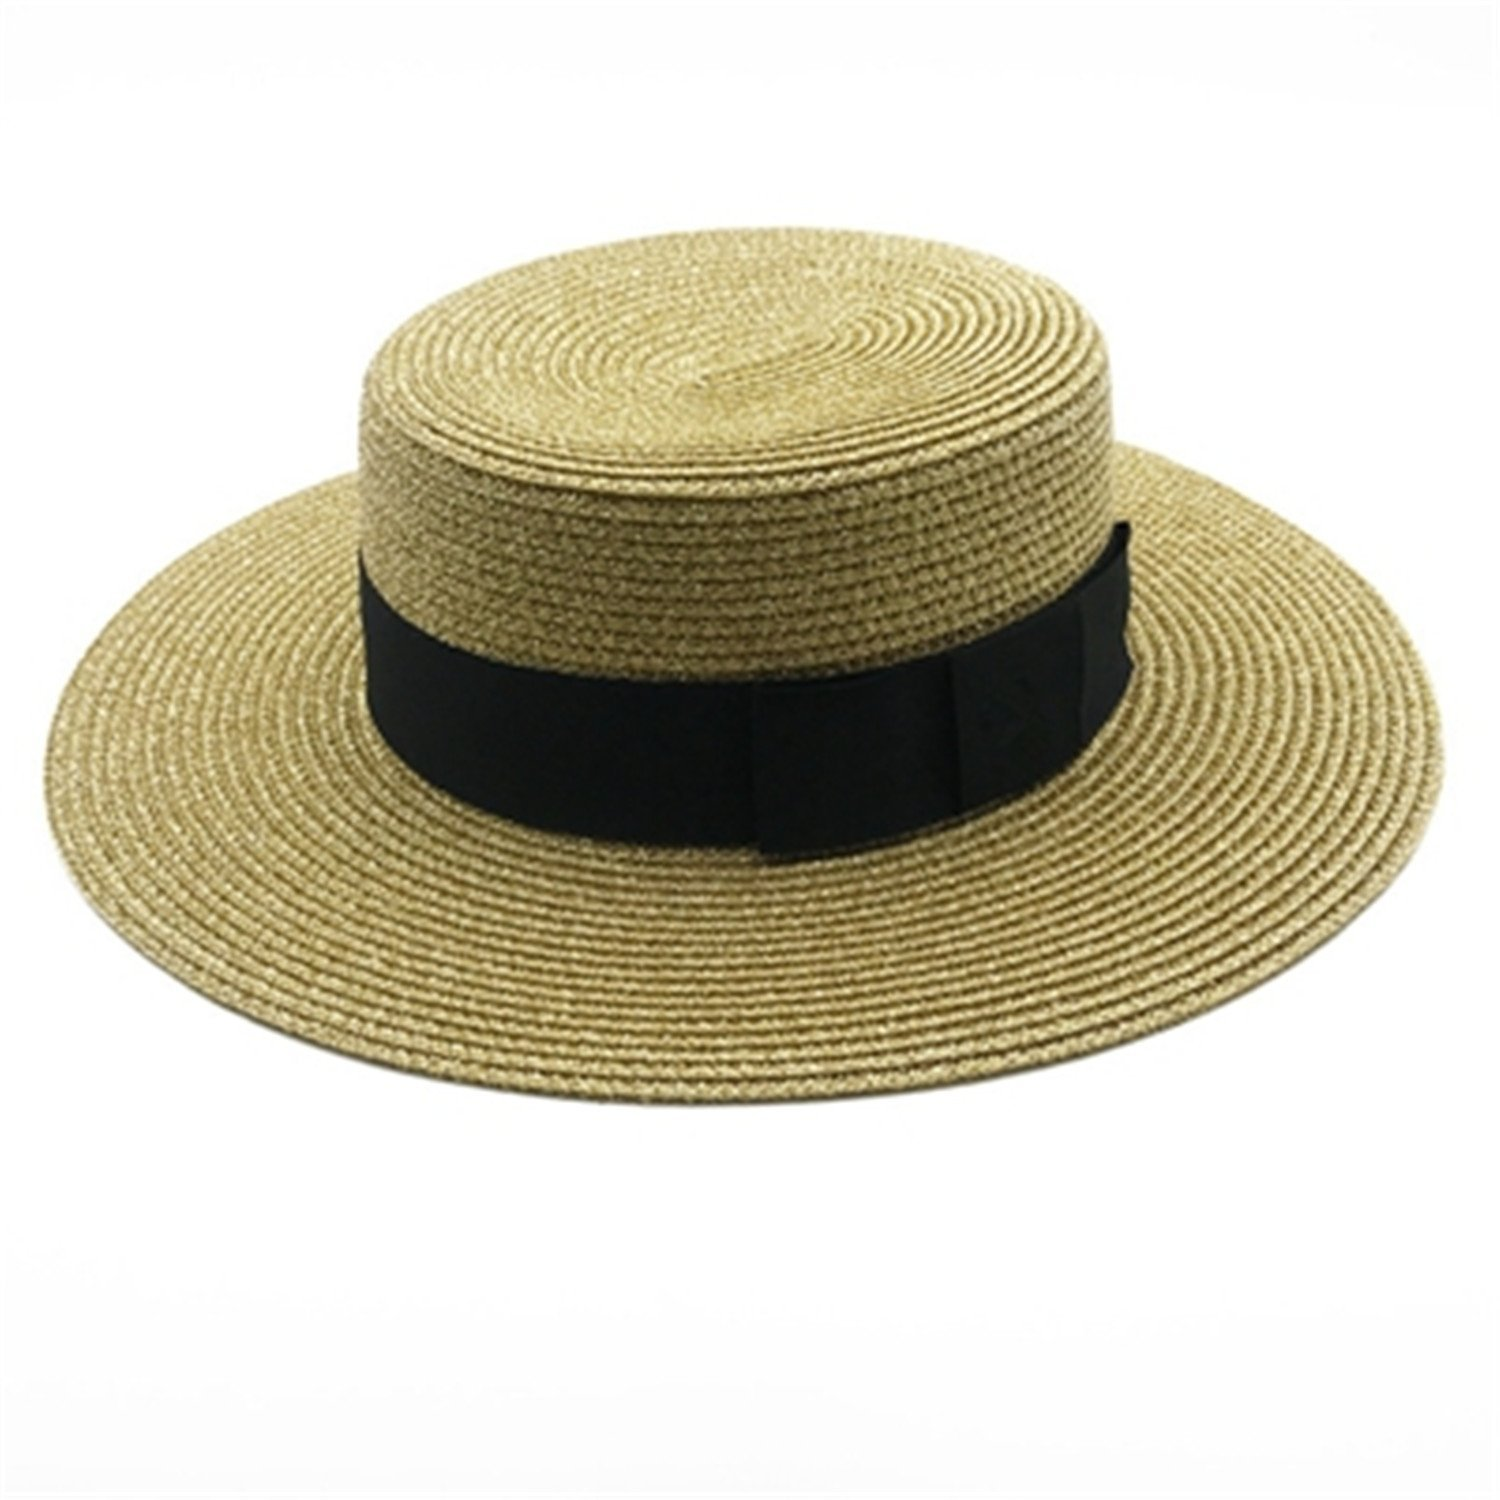 06c19f0b417d0 Get Quotations · Barry picks Fashion Wide Brim Sun Hats Solid Ladies Straw  Hats Women Summer Beach Cap Young